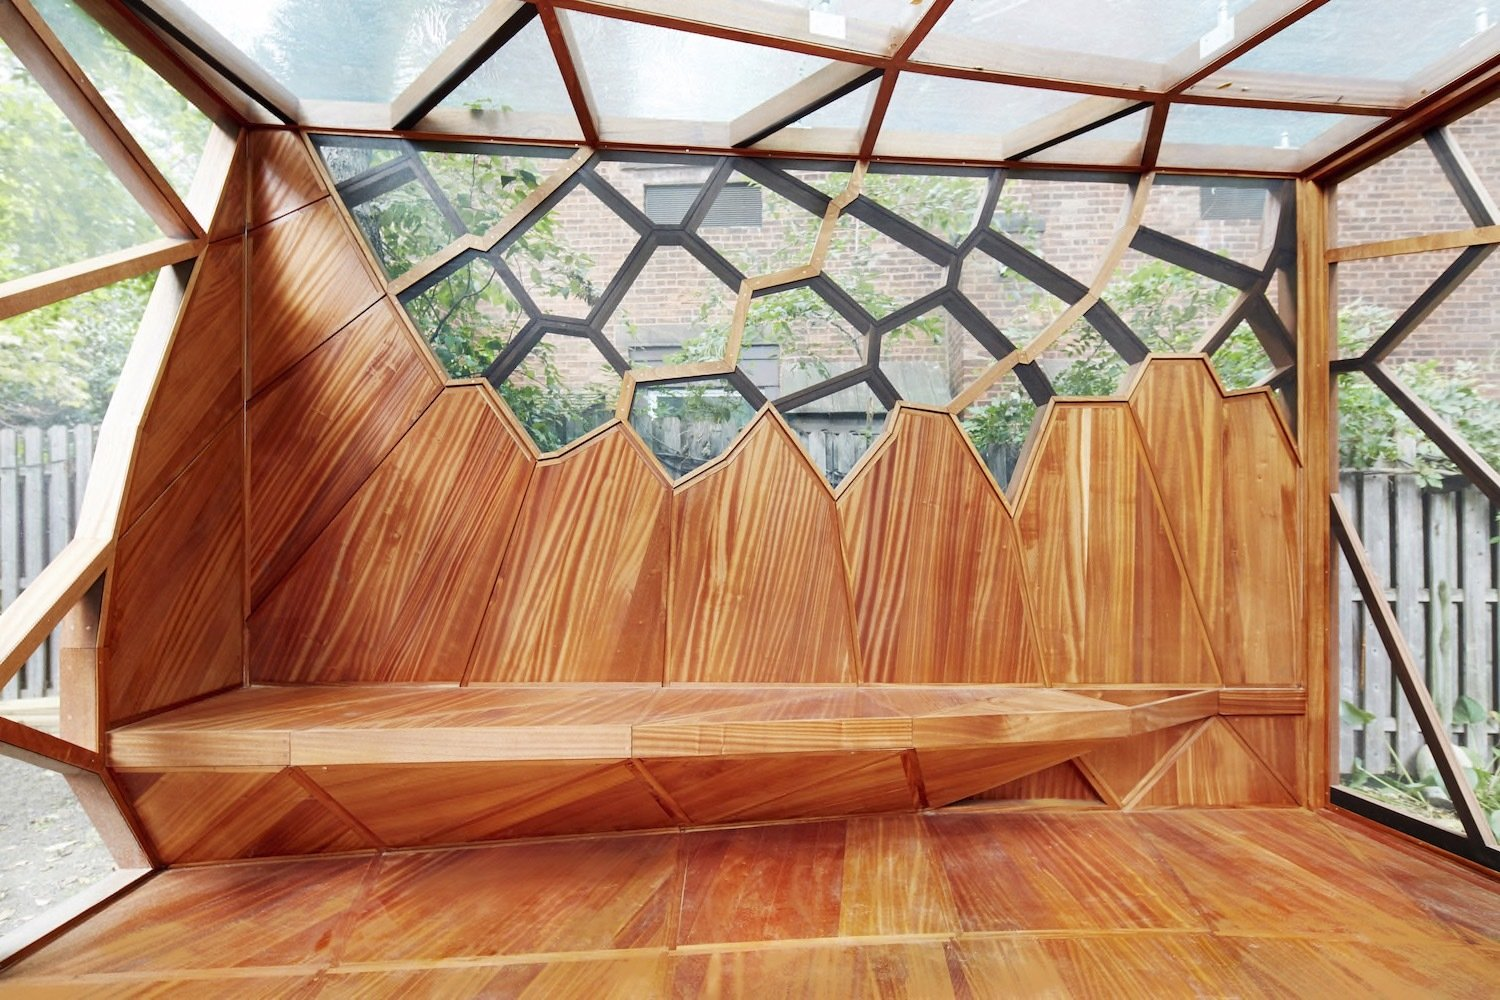 Living Room, Medium Hardwood Floor, and Bench  Photo 7 of 8 in This Prefab Backyard Pavilion Mimics a Dragonfly's Wings